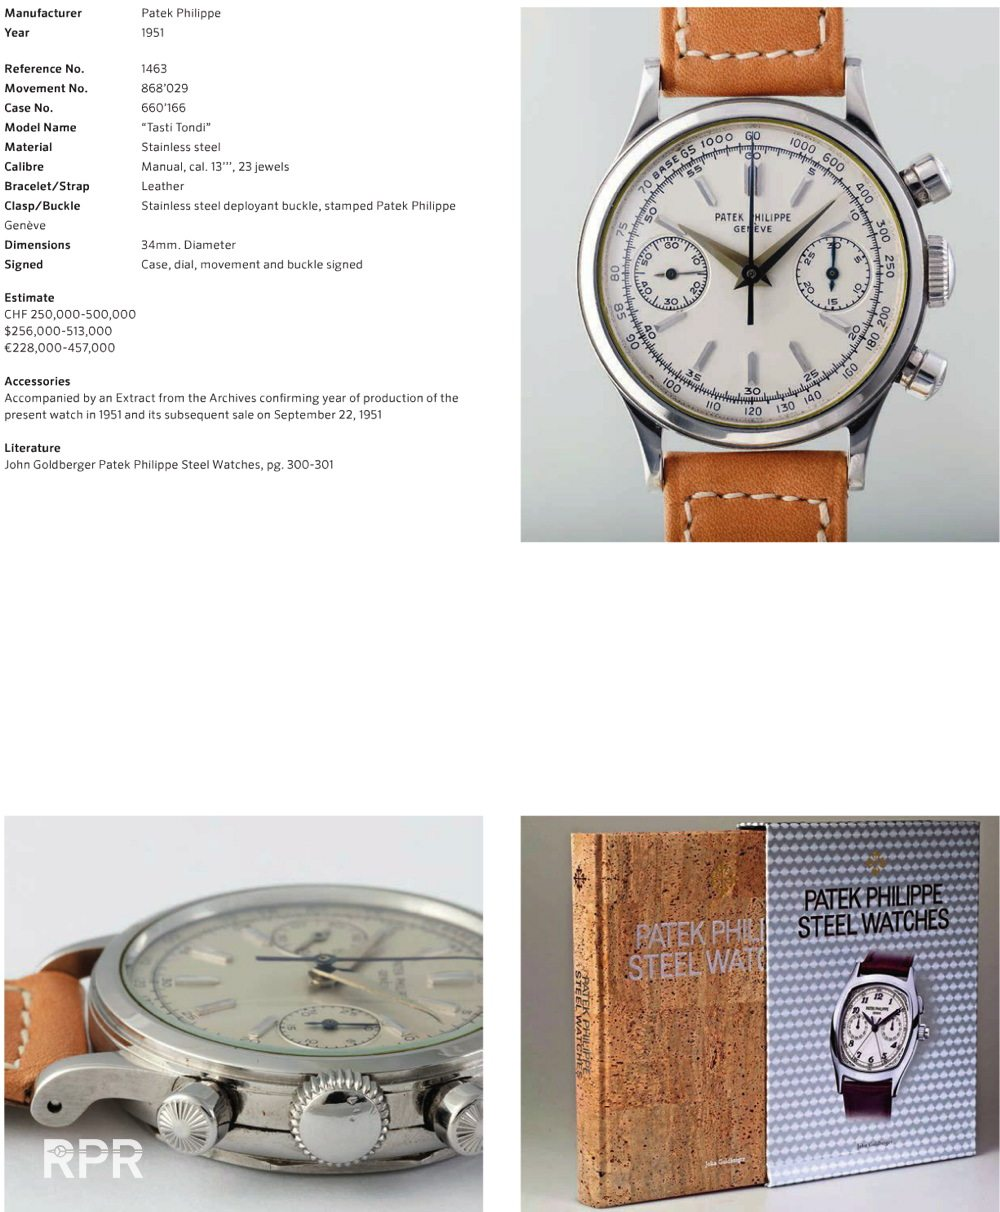 RPR_Rolex_geneva_auction_2015_13